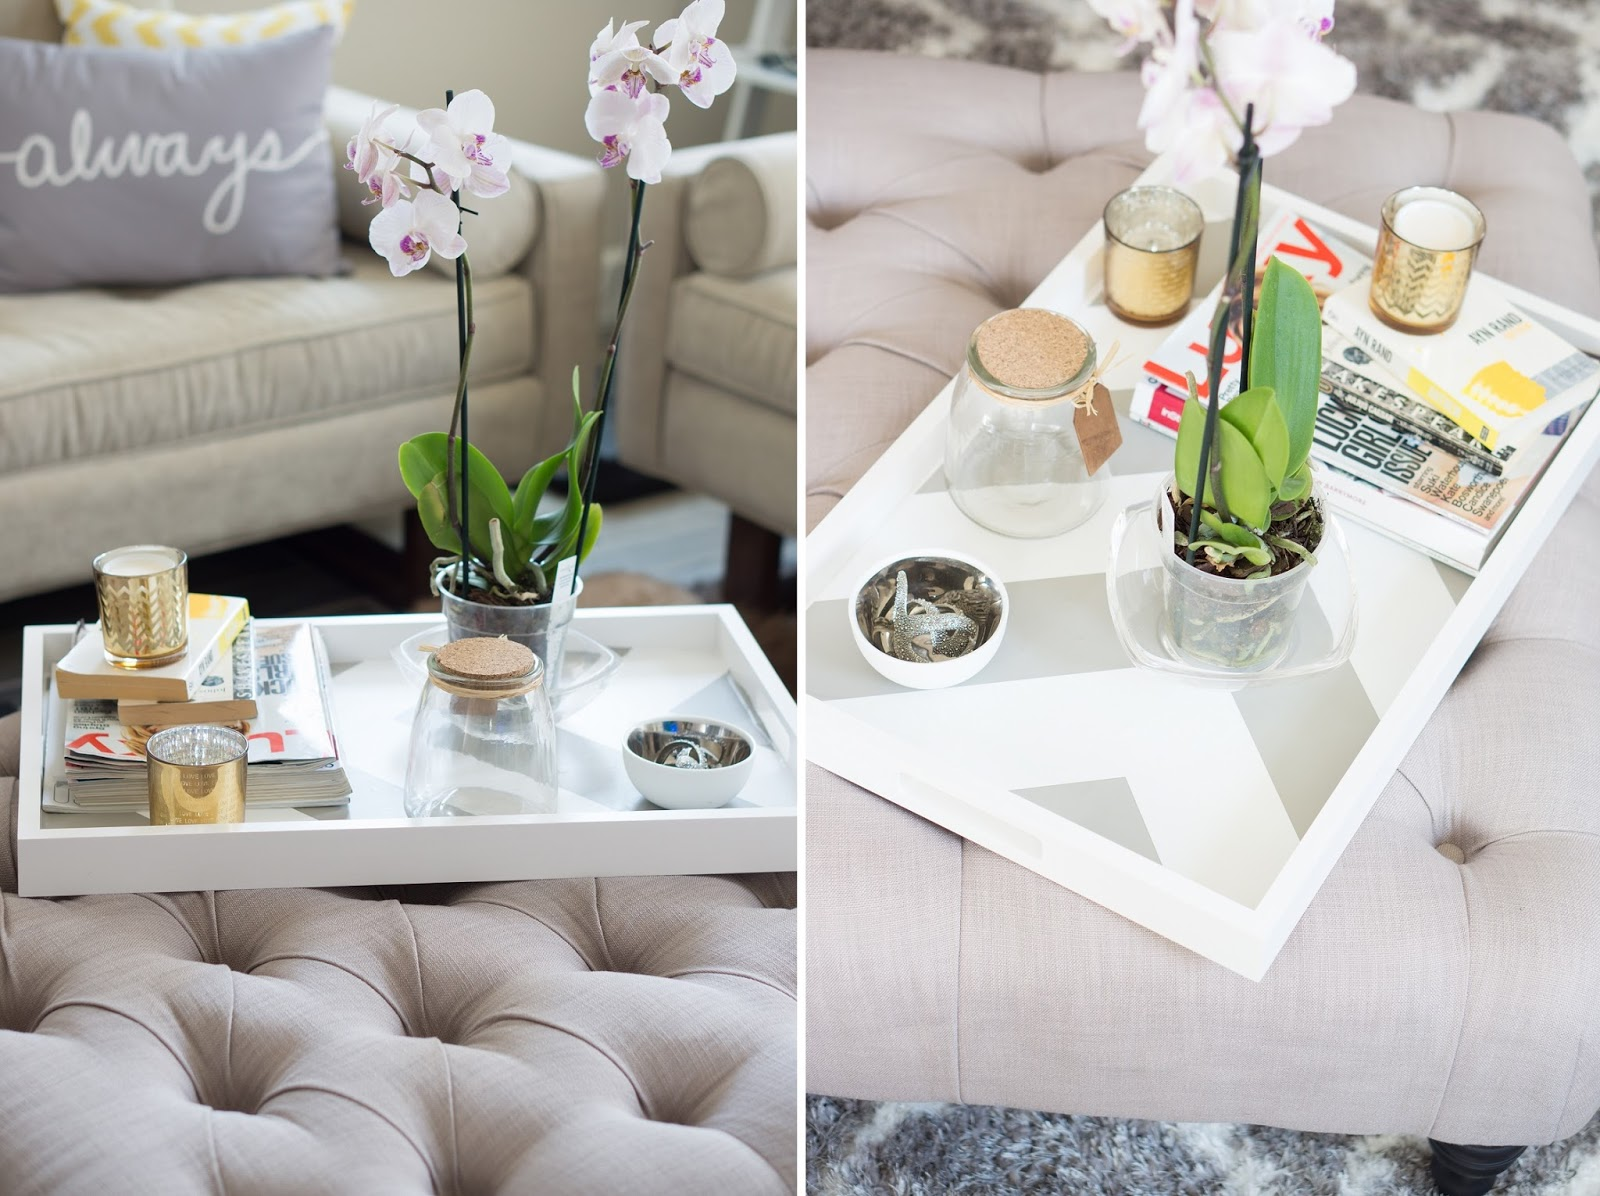 Inspiring Style Diy Coffee Table Tray